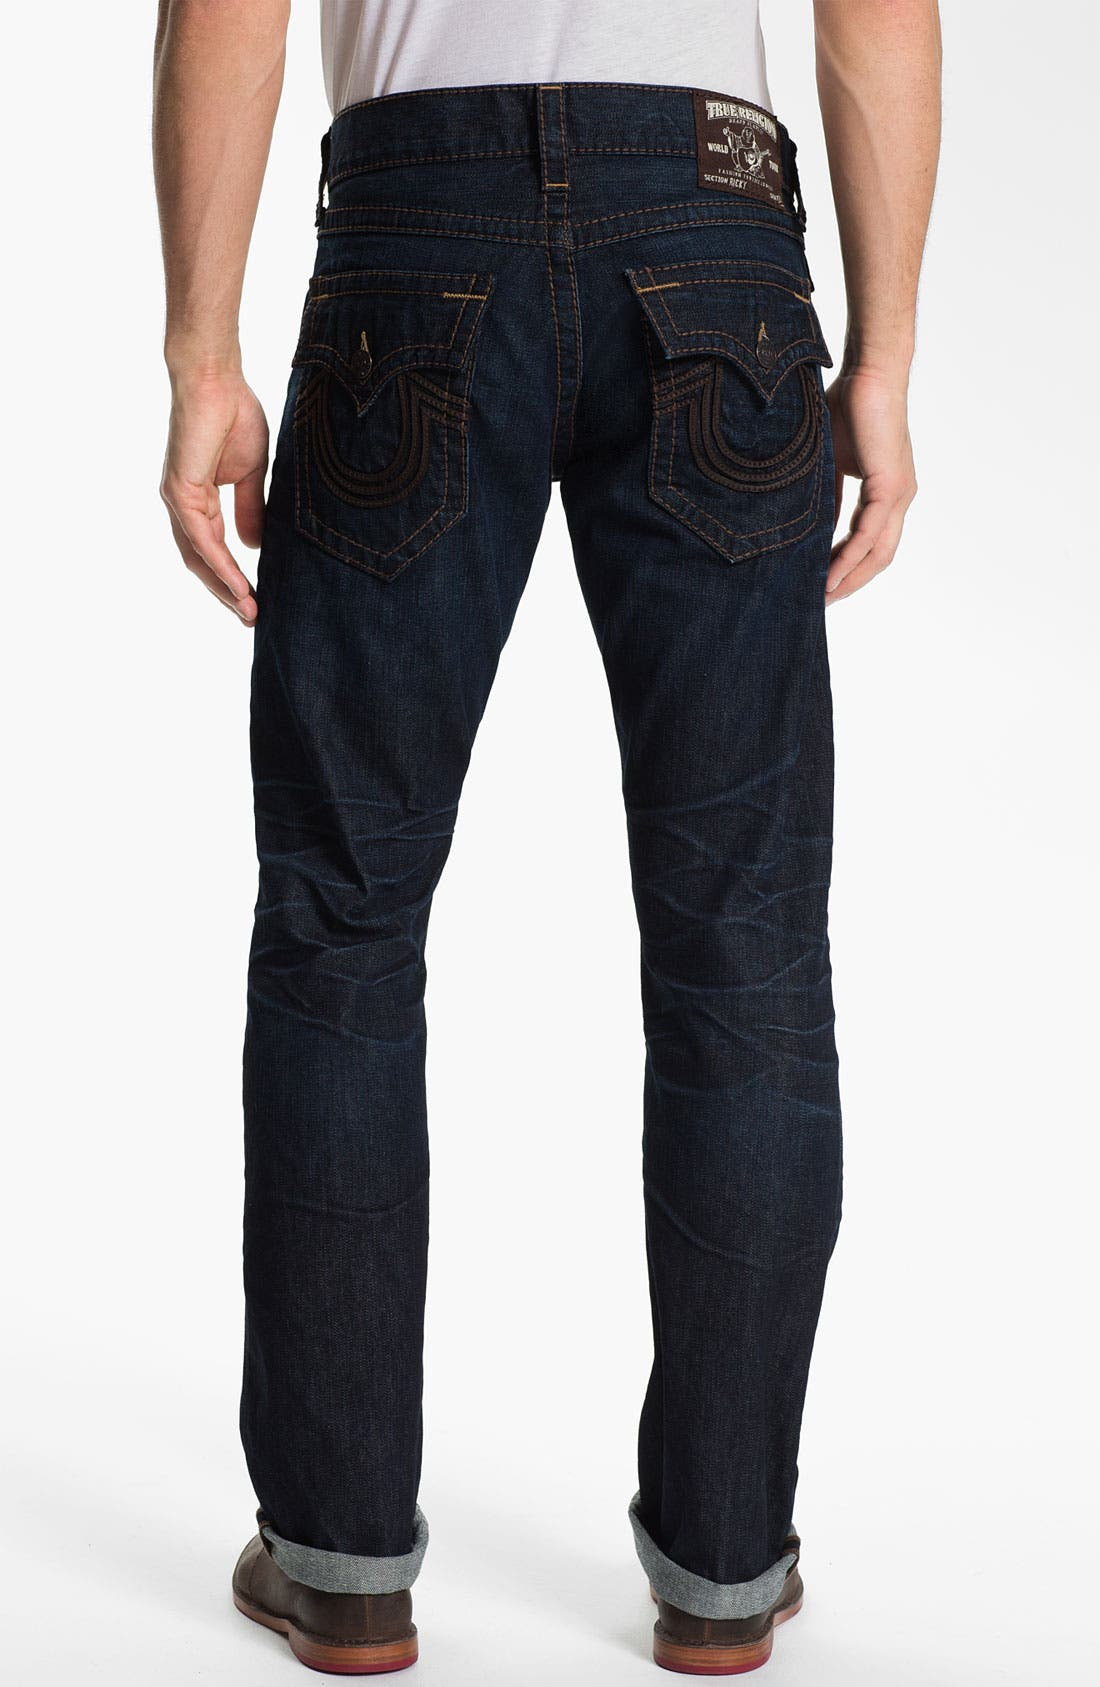 Alternate Image 1 Selected - True Religion Brand Jeans 'Ricky' Straight Leg Jeans (Overland) (Online Exclusive)